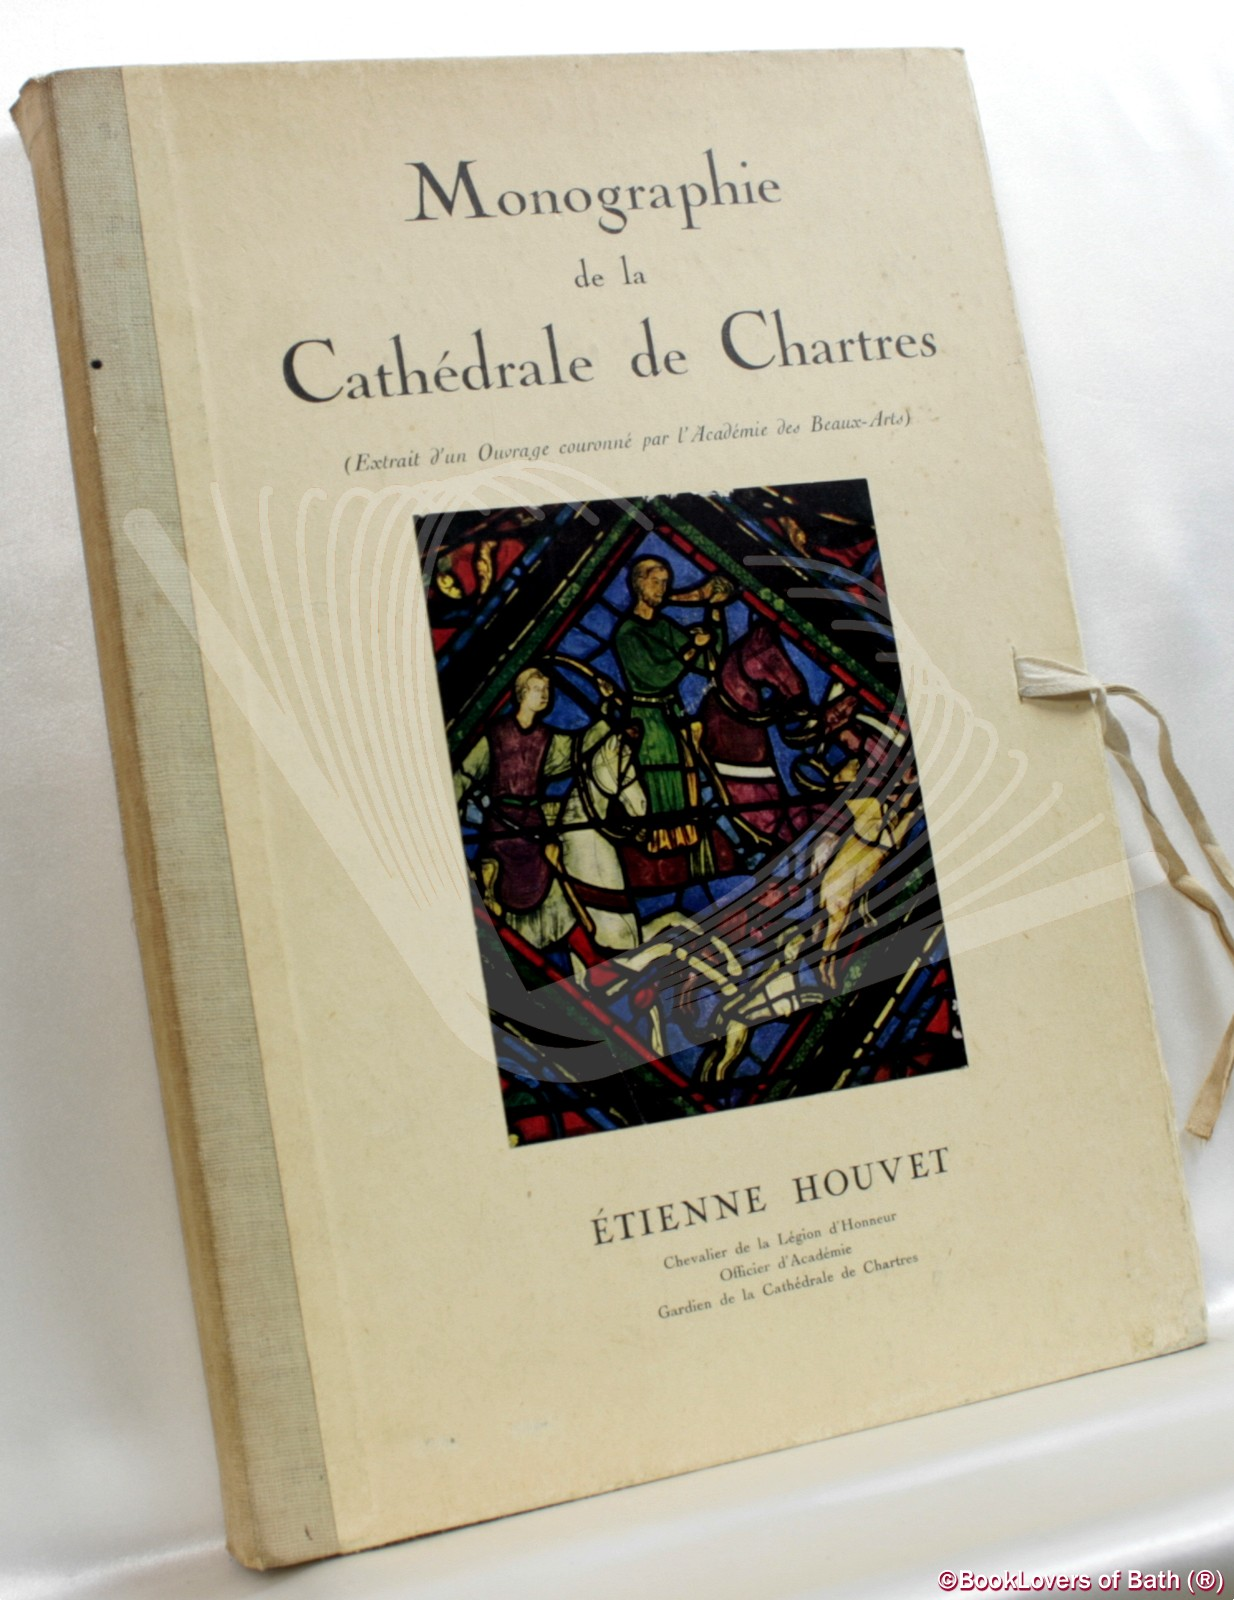 An Illustrated Monograph of Chartres Cathedral: Being an Extract of a Work Crowned by the Academie des Beaux Arts - Etienne Houvet